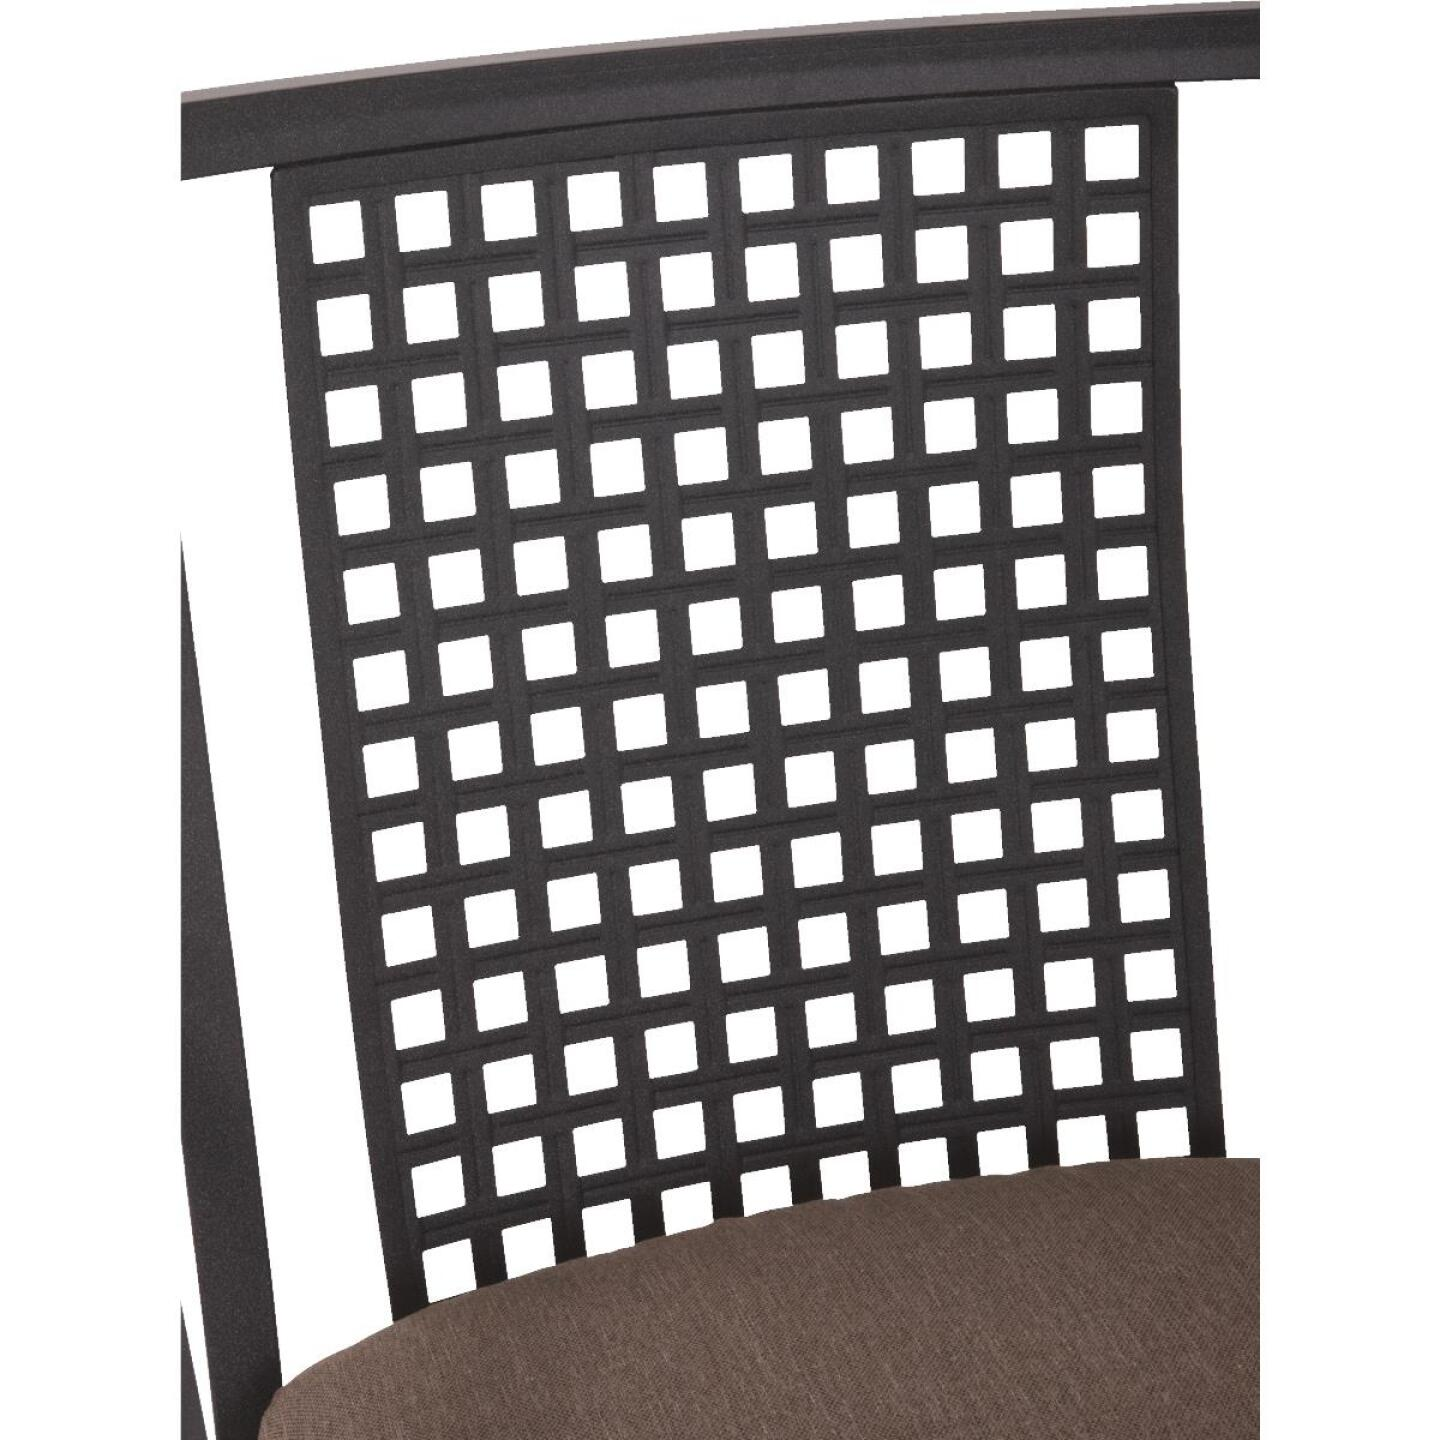 Palazzo 3-Piece Bistro Set with Seat Cushions Image 6